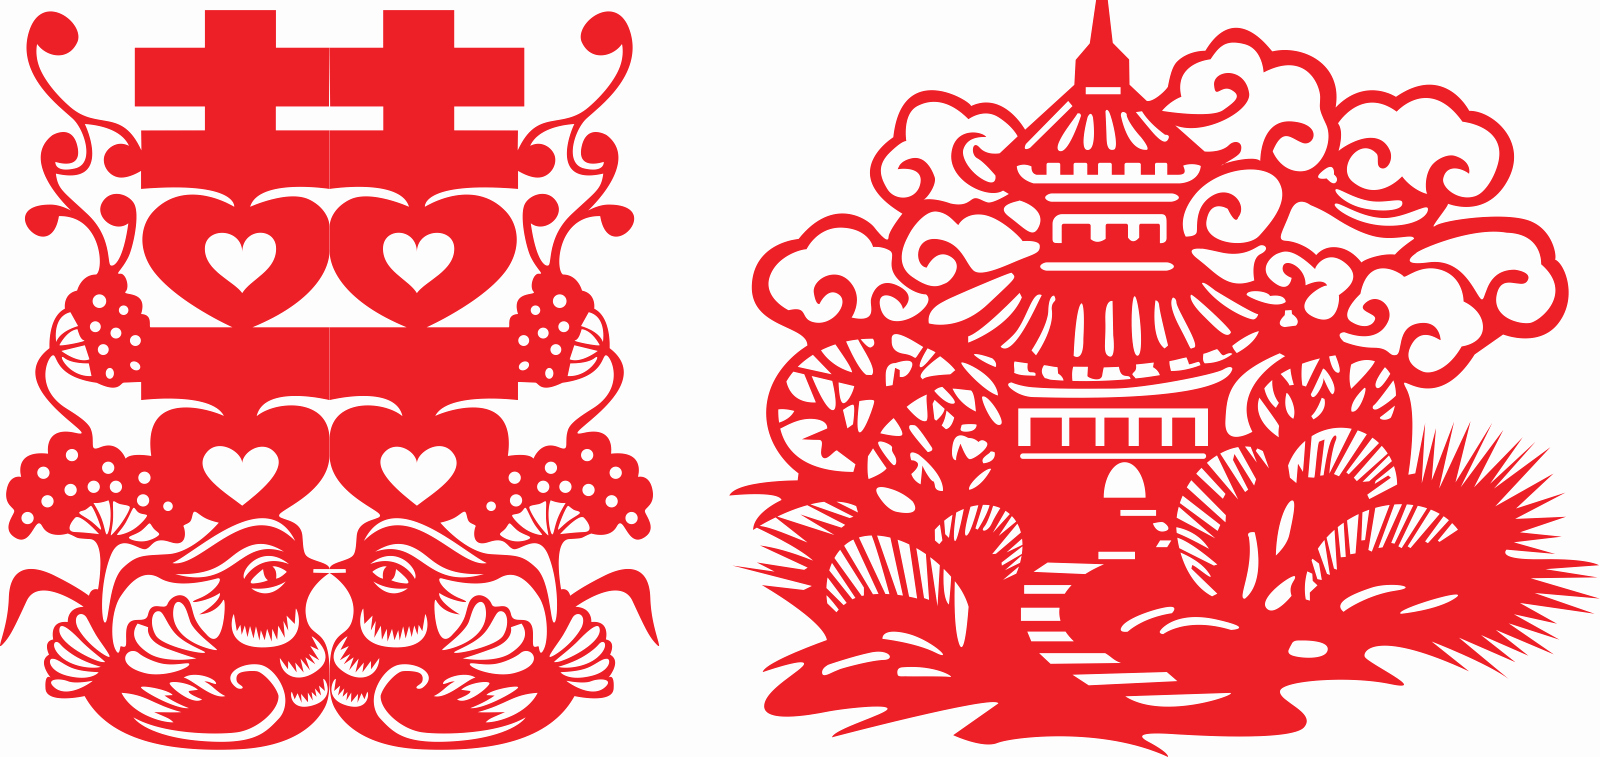 Beautiful Chinese Traditional Wedding Paper Cutting Art